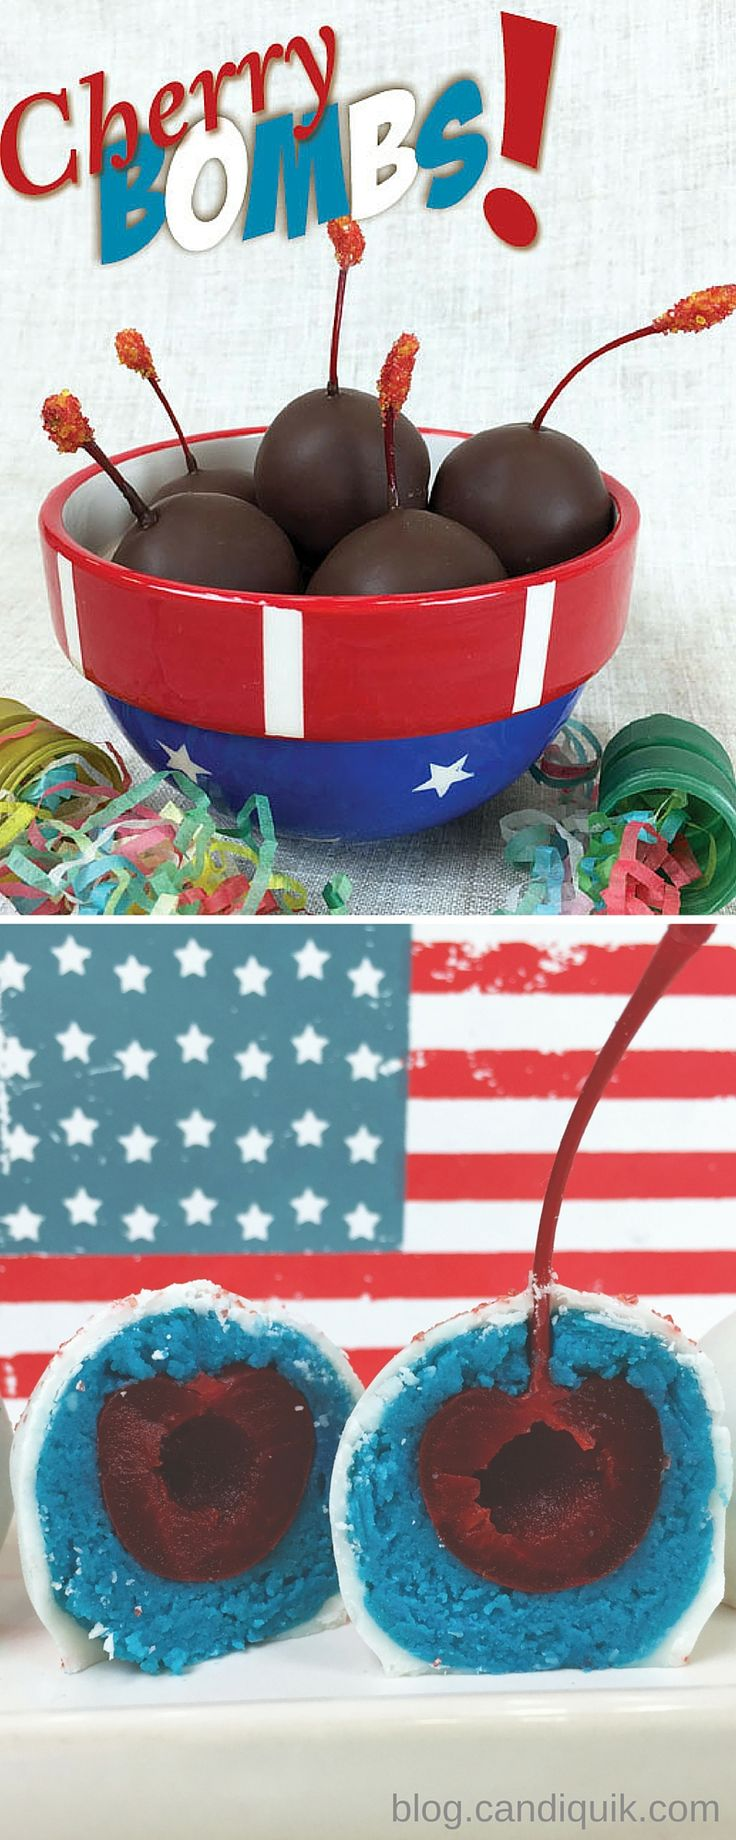 Cherry {Cake} Bombs two ways! So cute for Memorial Day or 4th of July! blog.candiquik.com